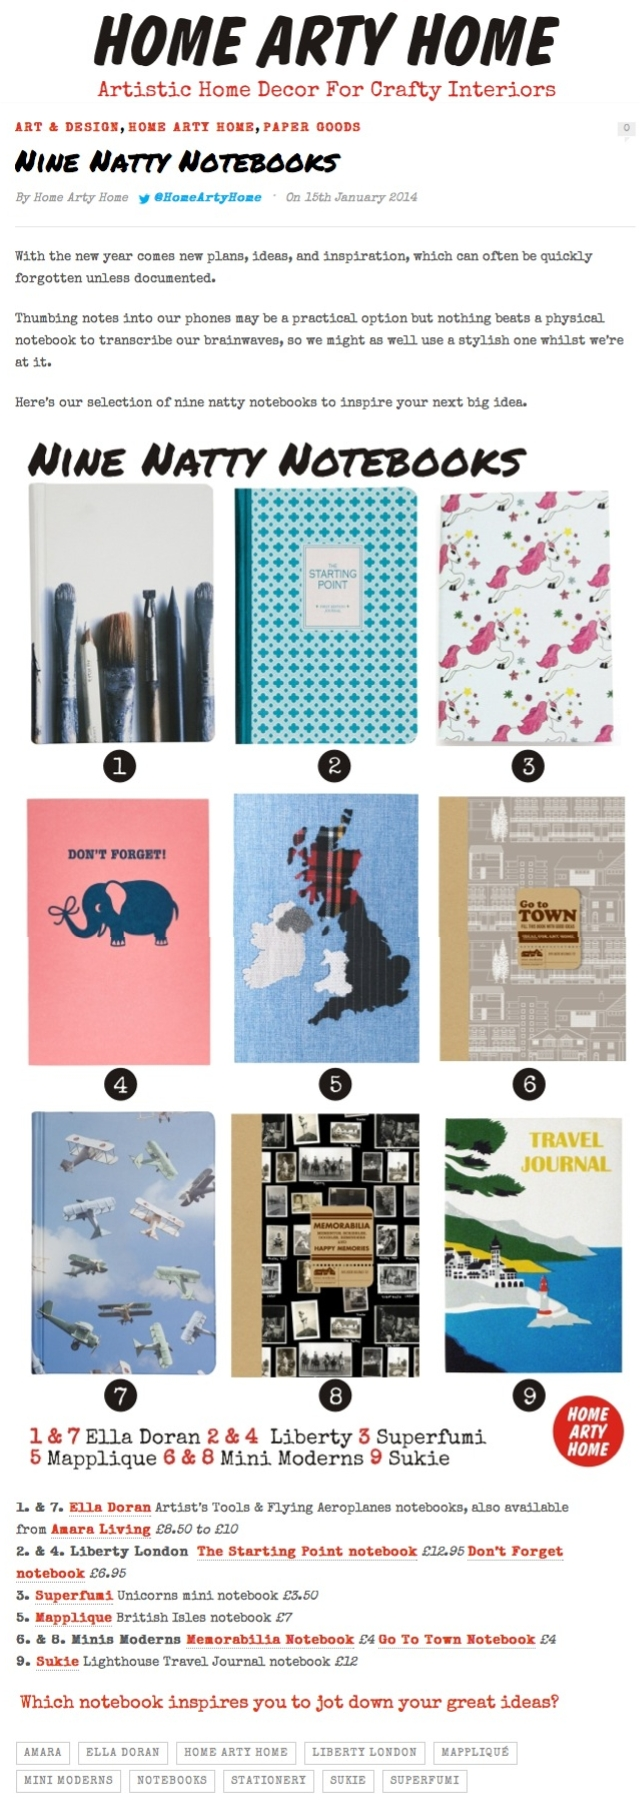 homeartyhome notebooks